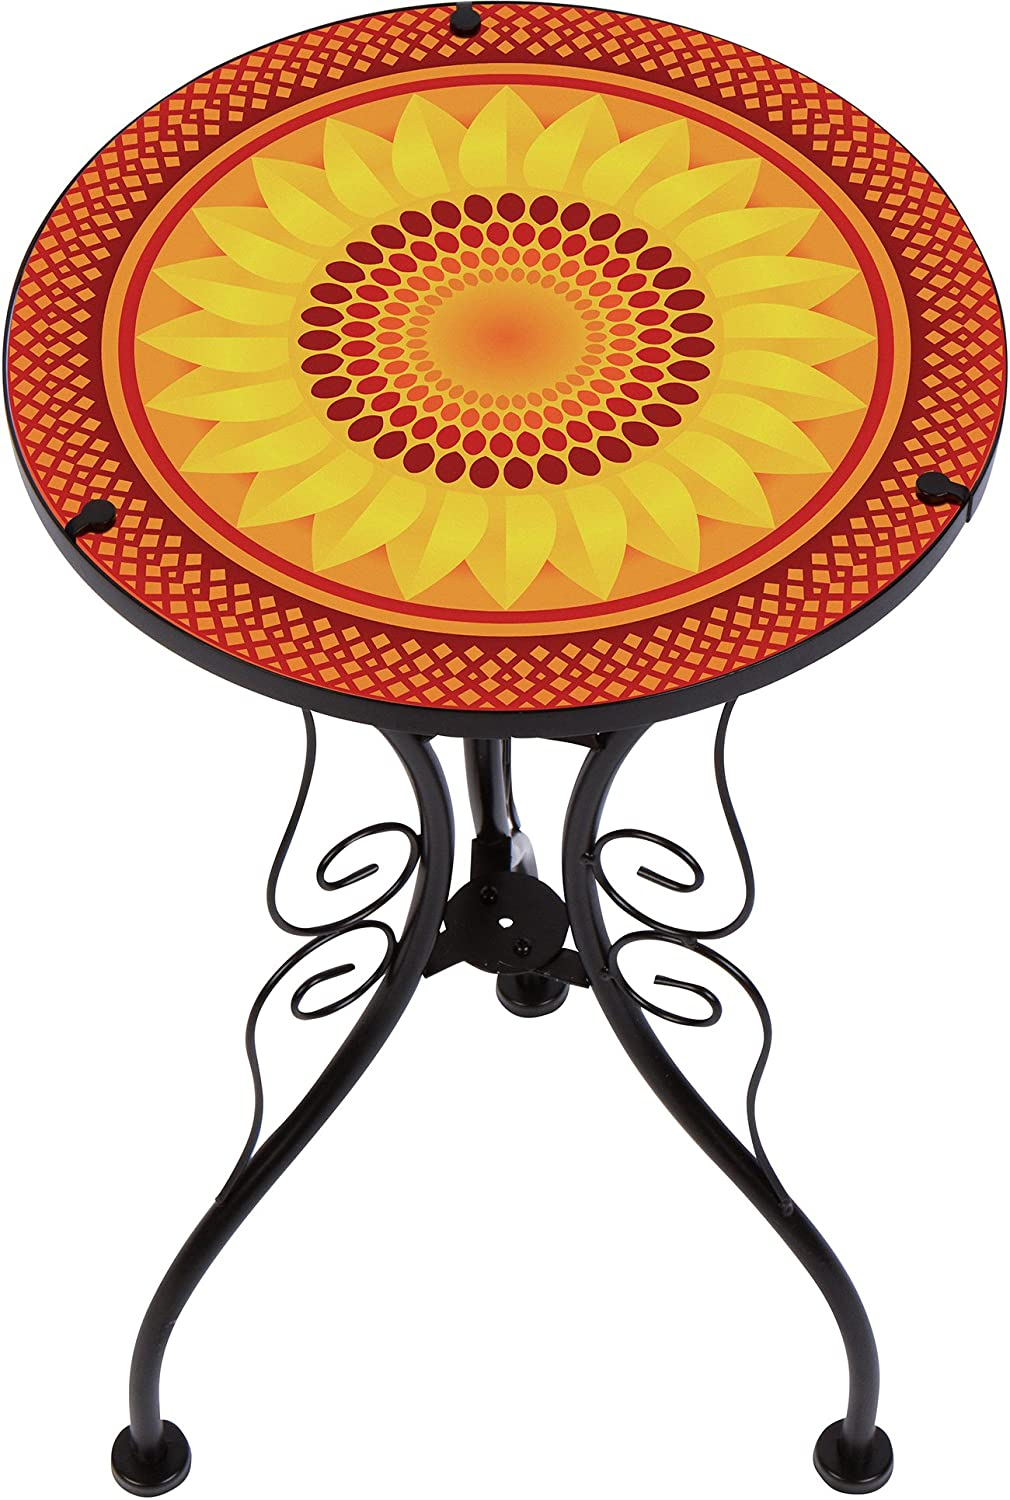 Trademark Innovations 22 Sunflower Design Glass Metal Side Table